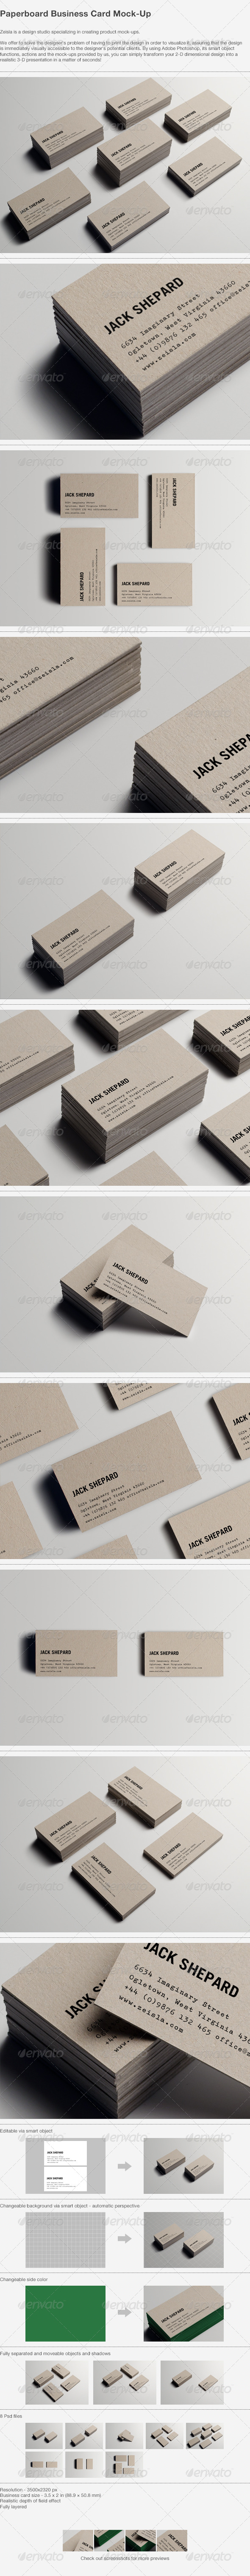 Paperboard Business Card Mock-up - Business Cards Print